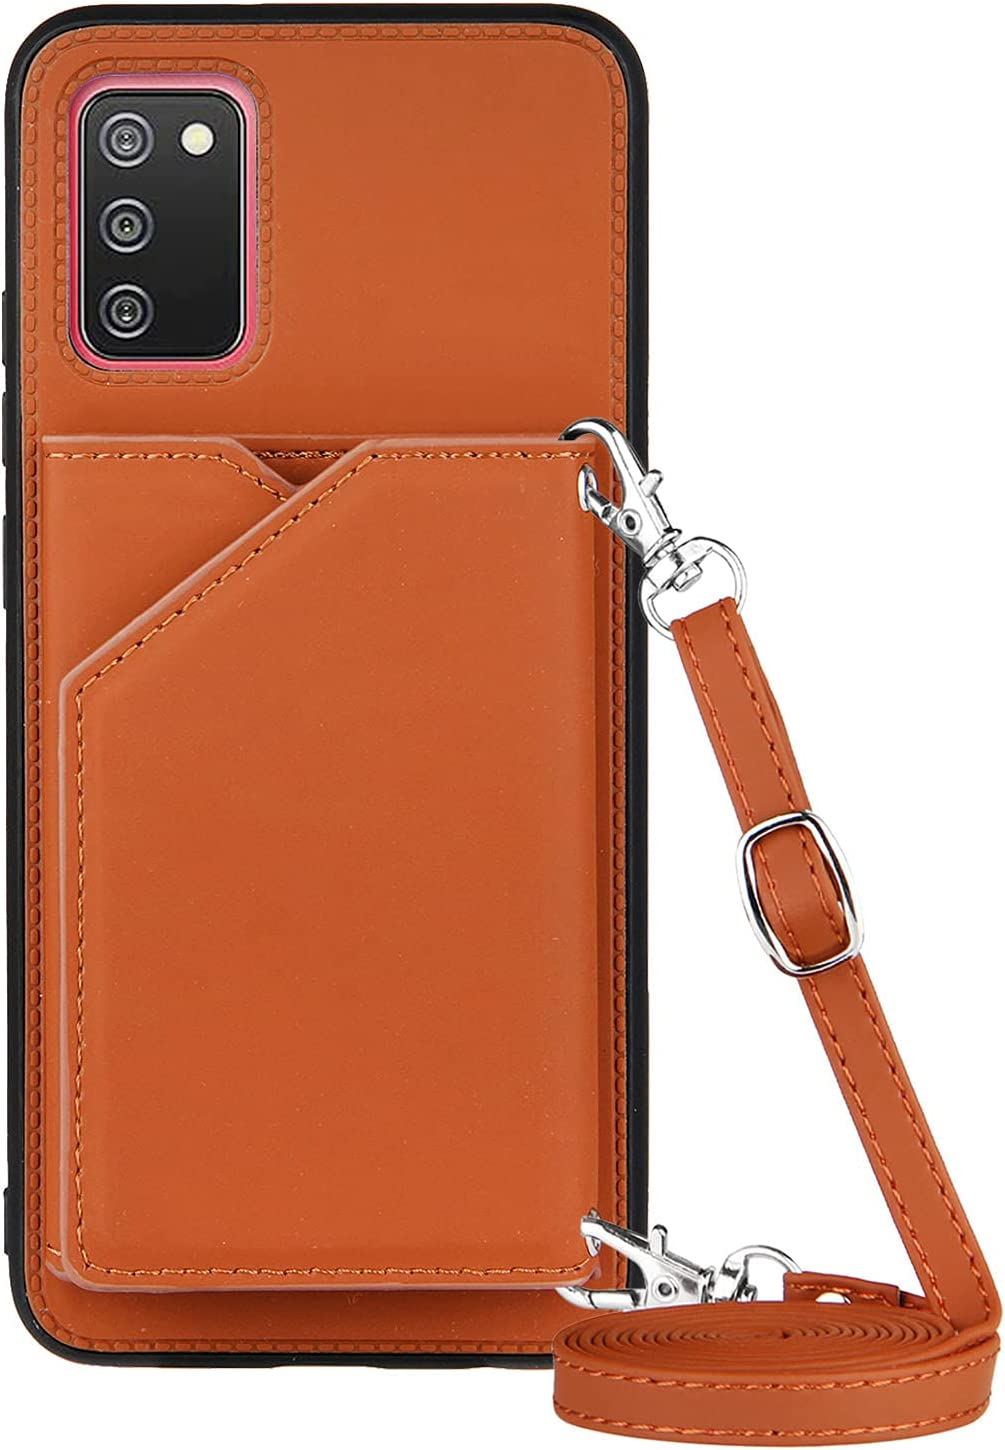 Galaxy A02S Wallet Case for Samsung A02S Lanyard Case, Shockproof Stand Bumper Cover Cross-Body Girly Case(US Version) (Brown)